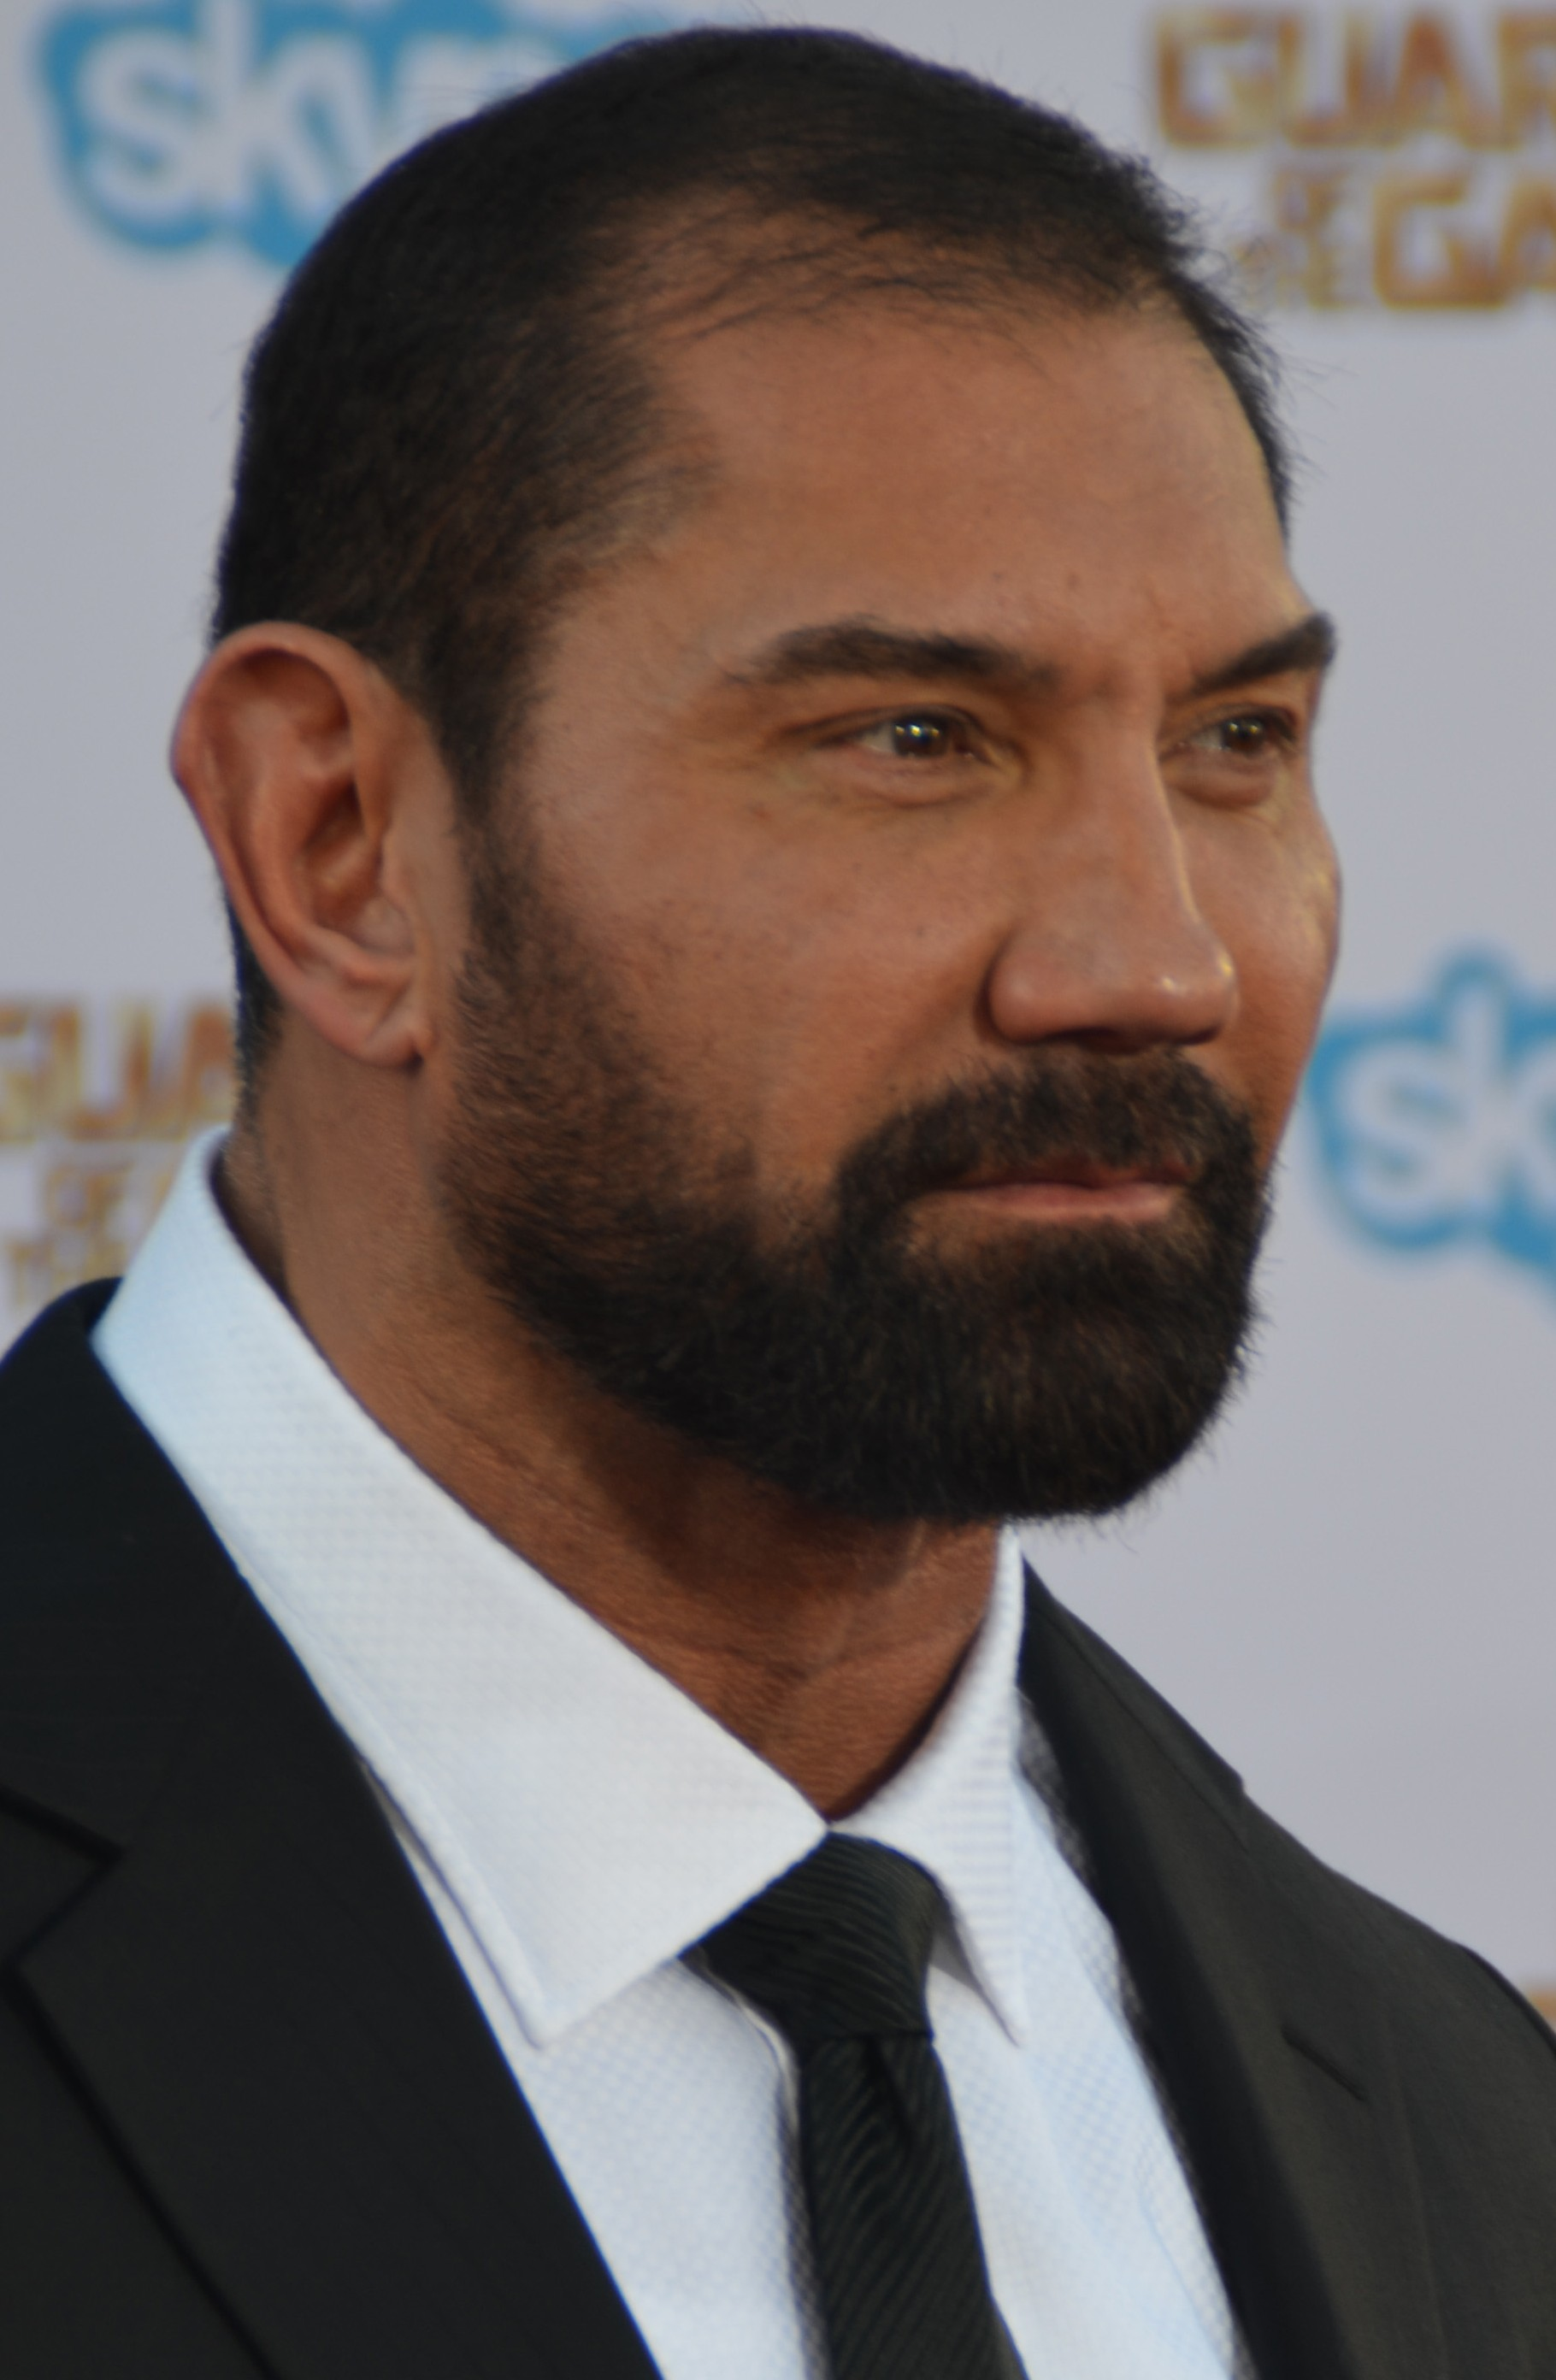 Dave Bautista  - 2018 Black hair & braid hair style.